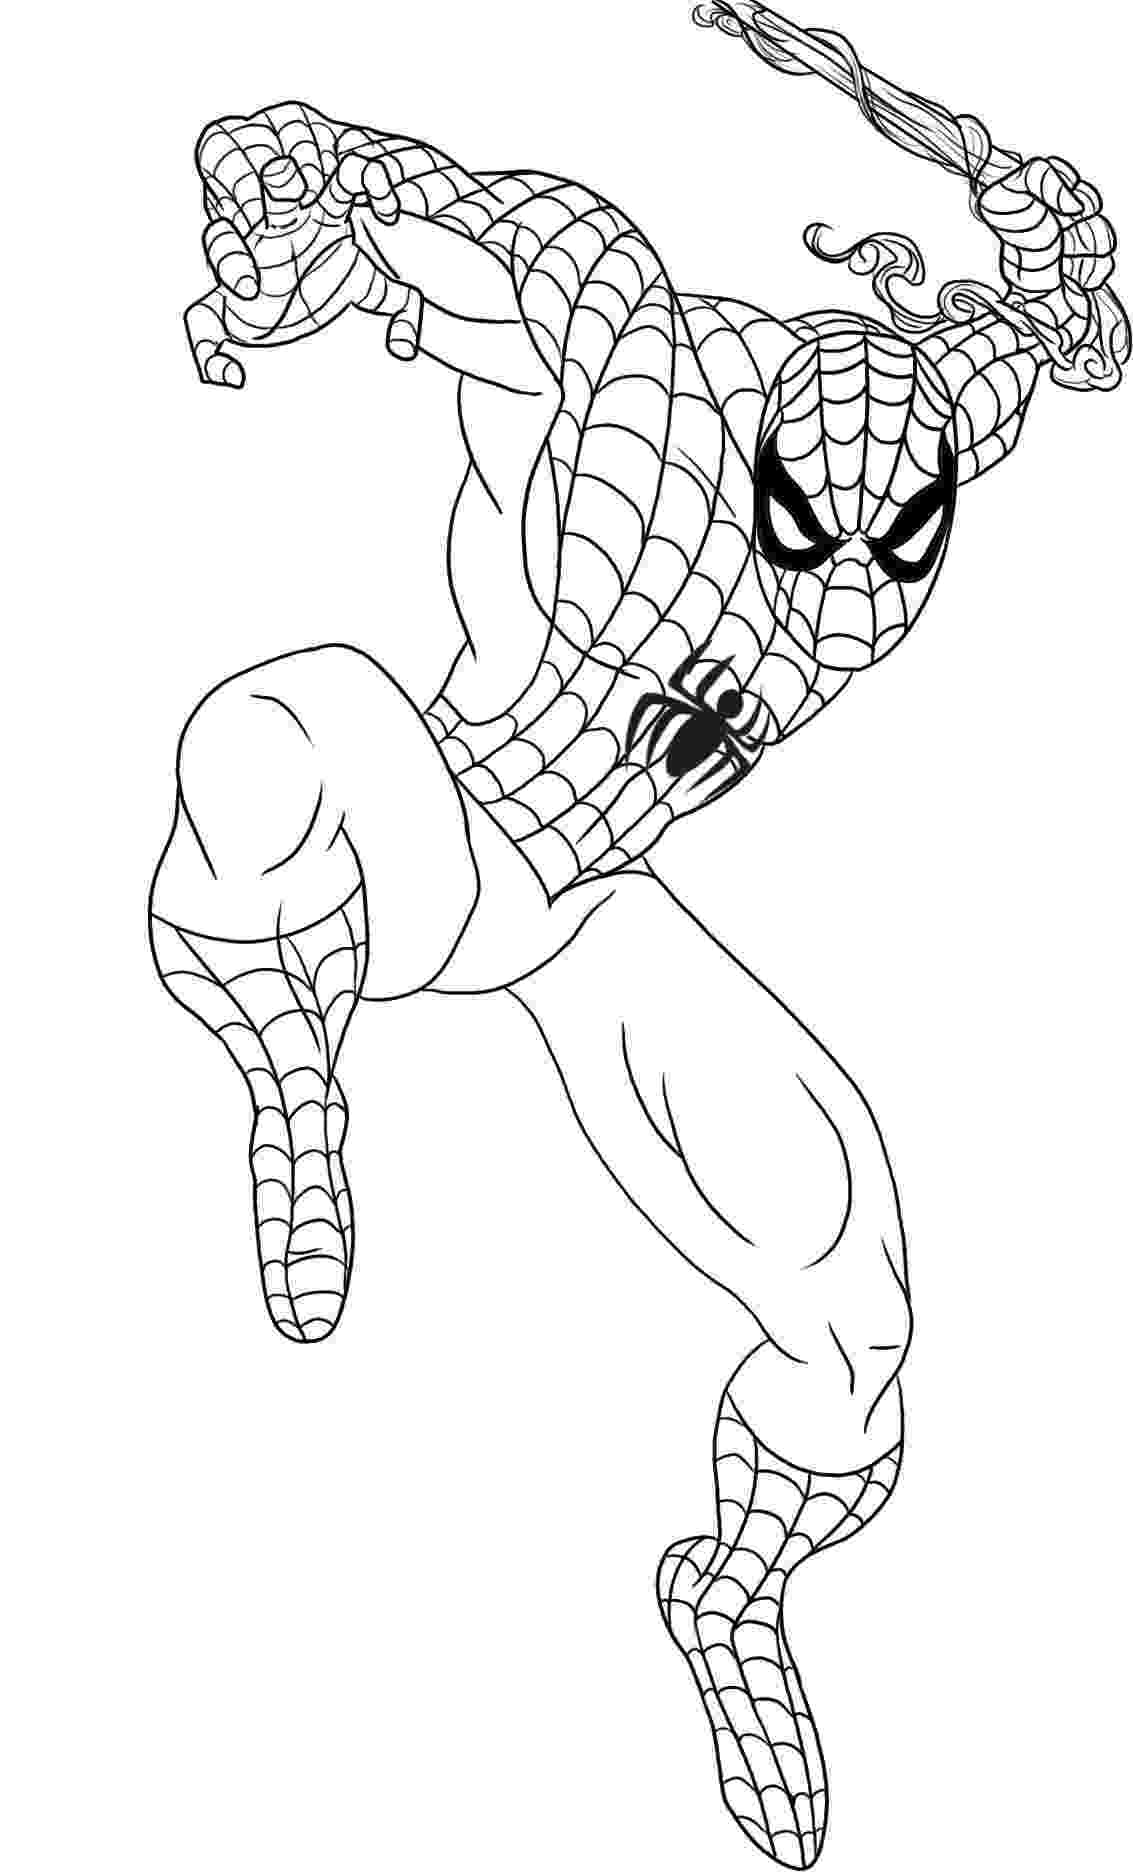 spiderman to color printable spiderman coloring pages for kids cool2bkids to color spiderman